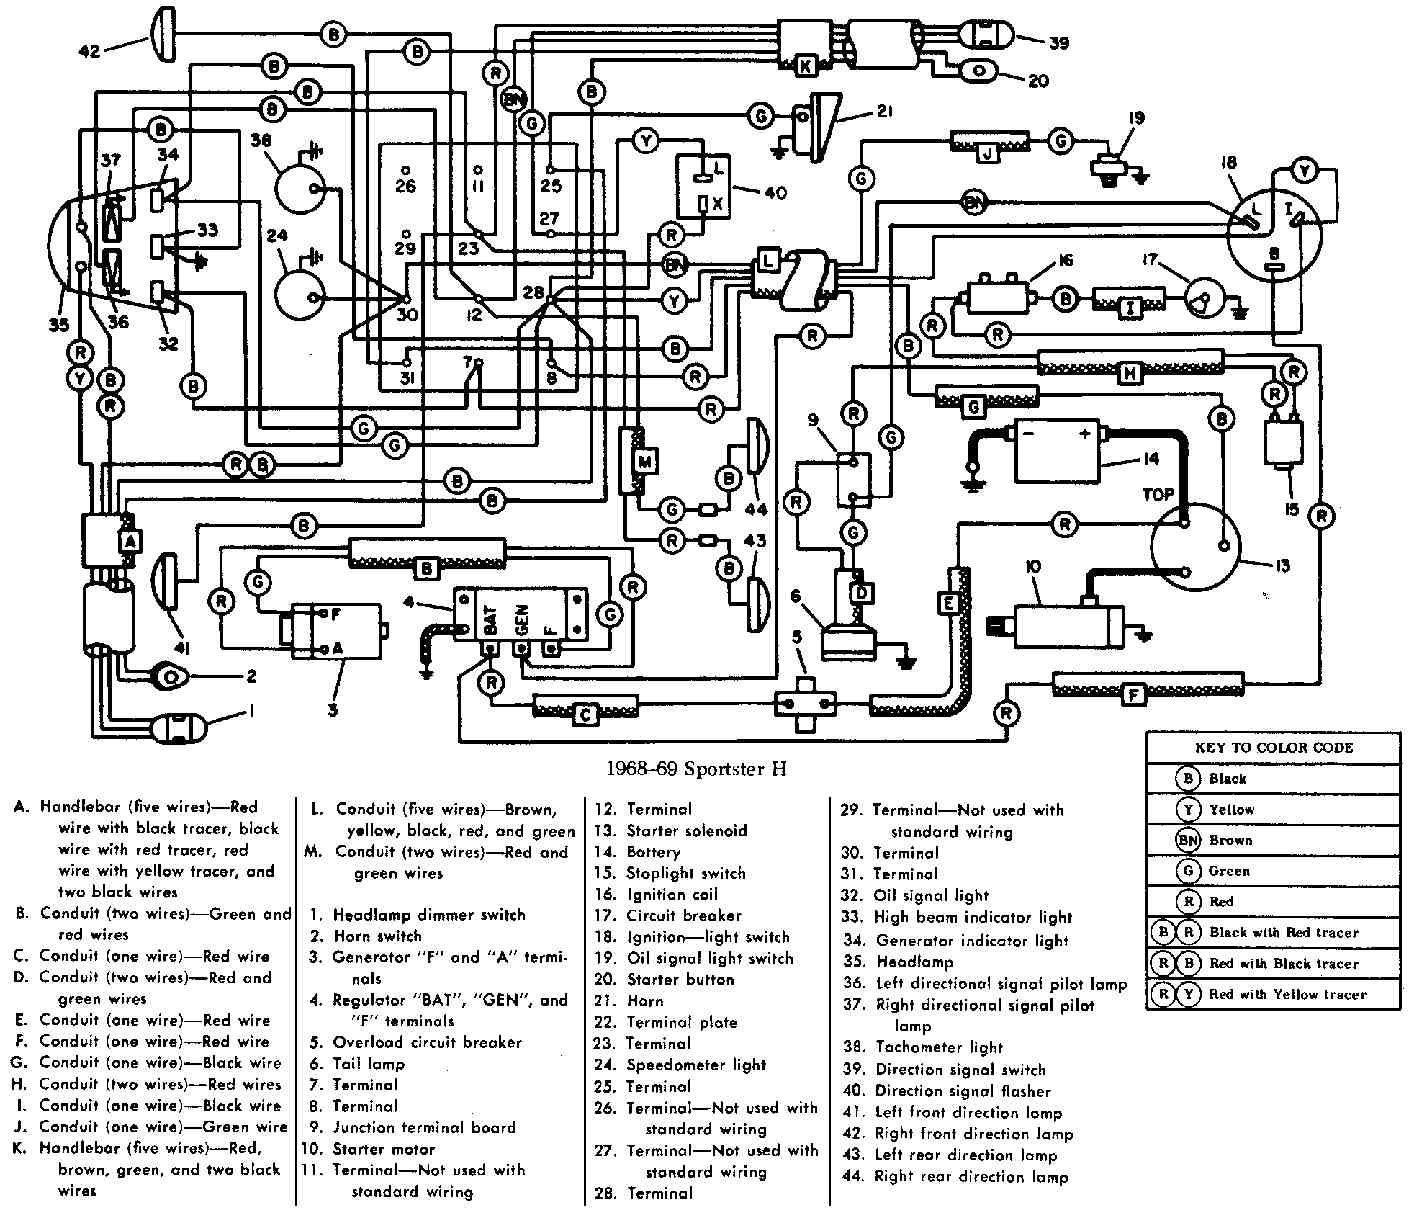 Sportster Dyna 2000 Ignition Wiring Diagram